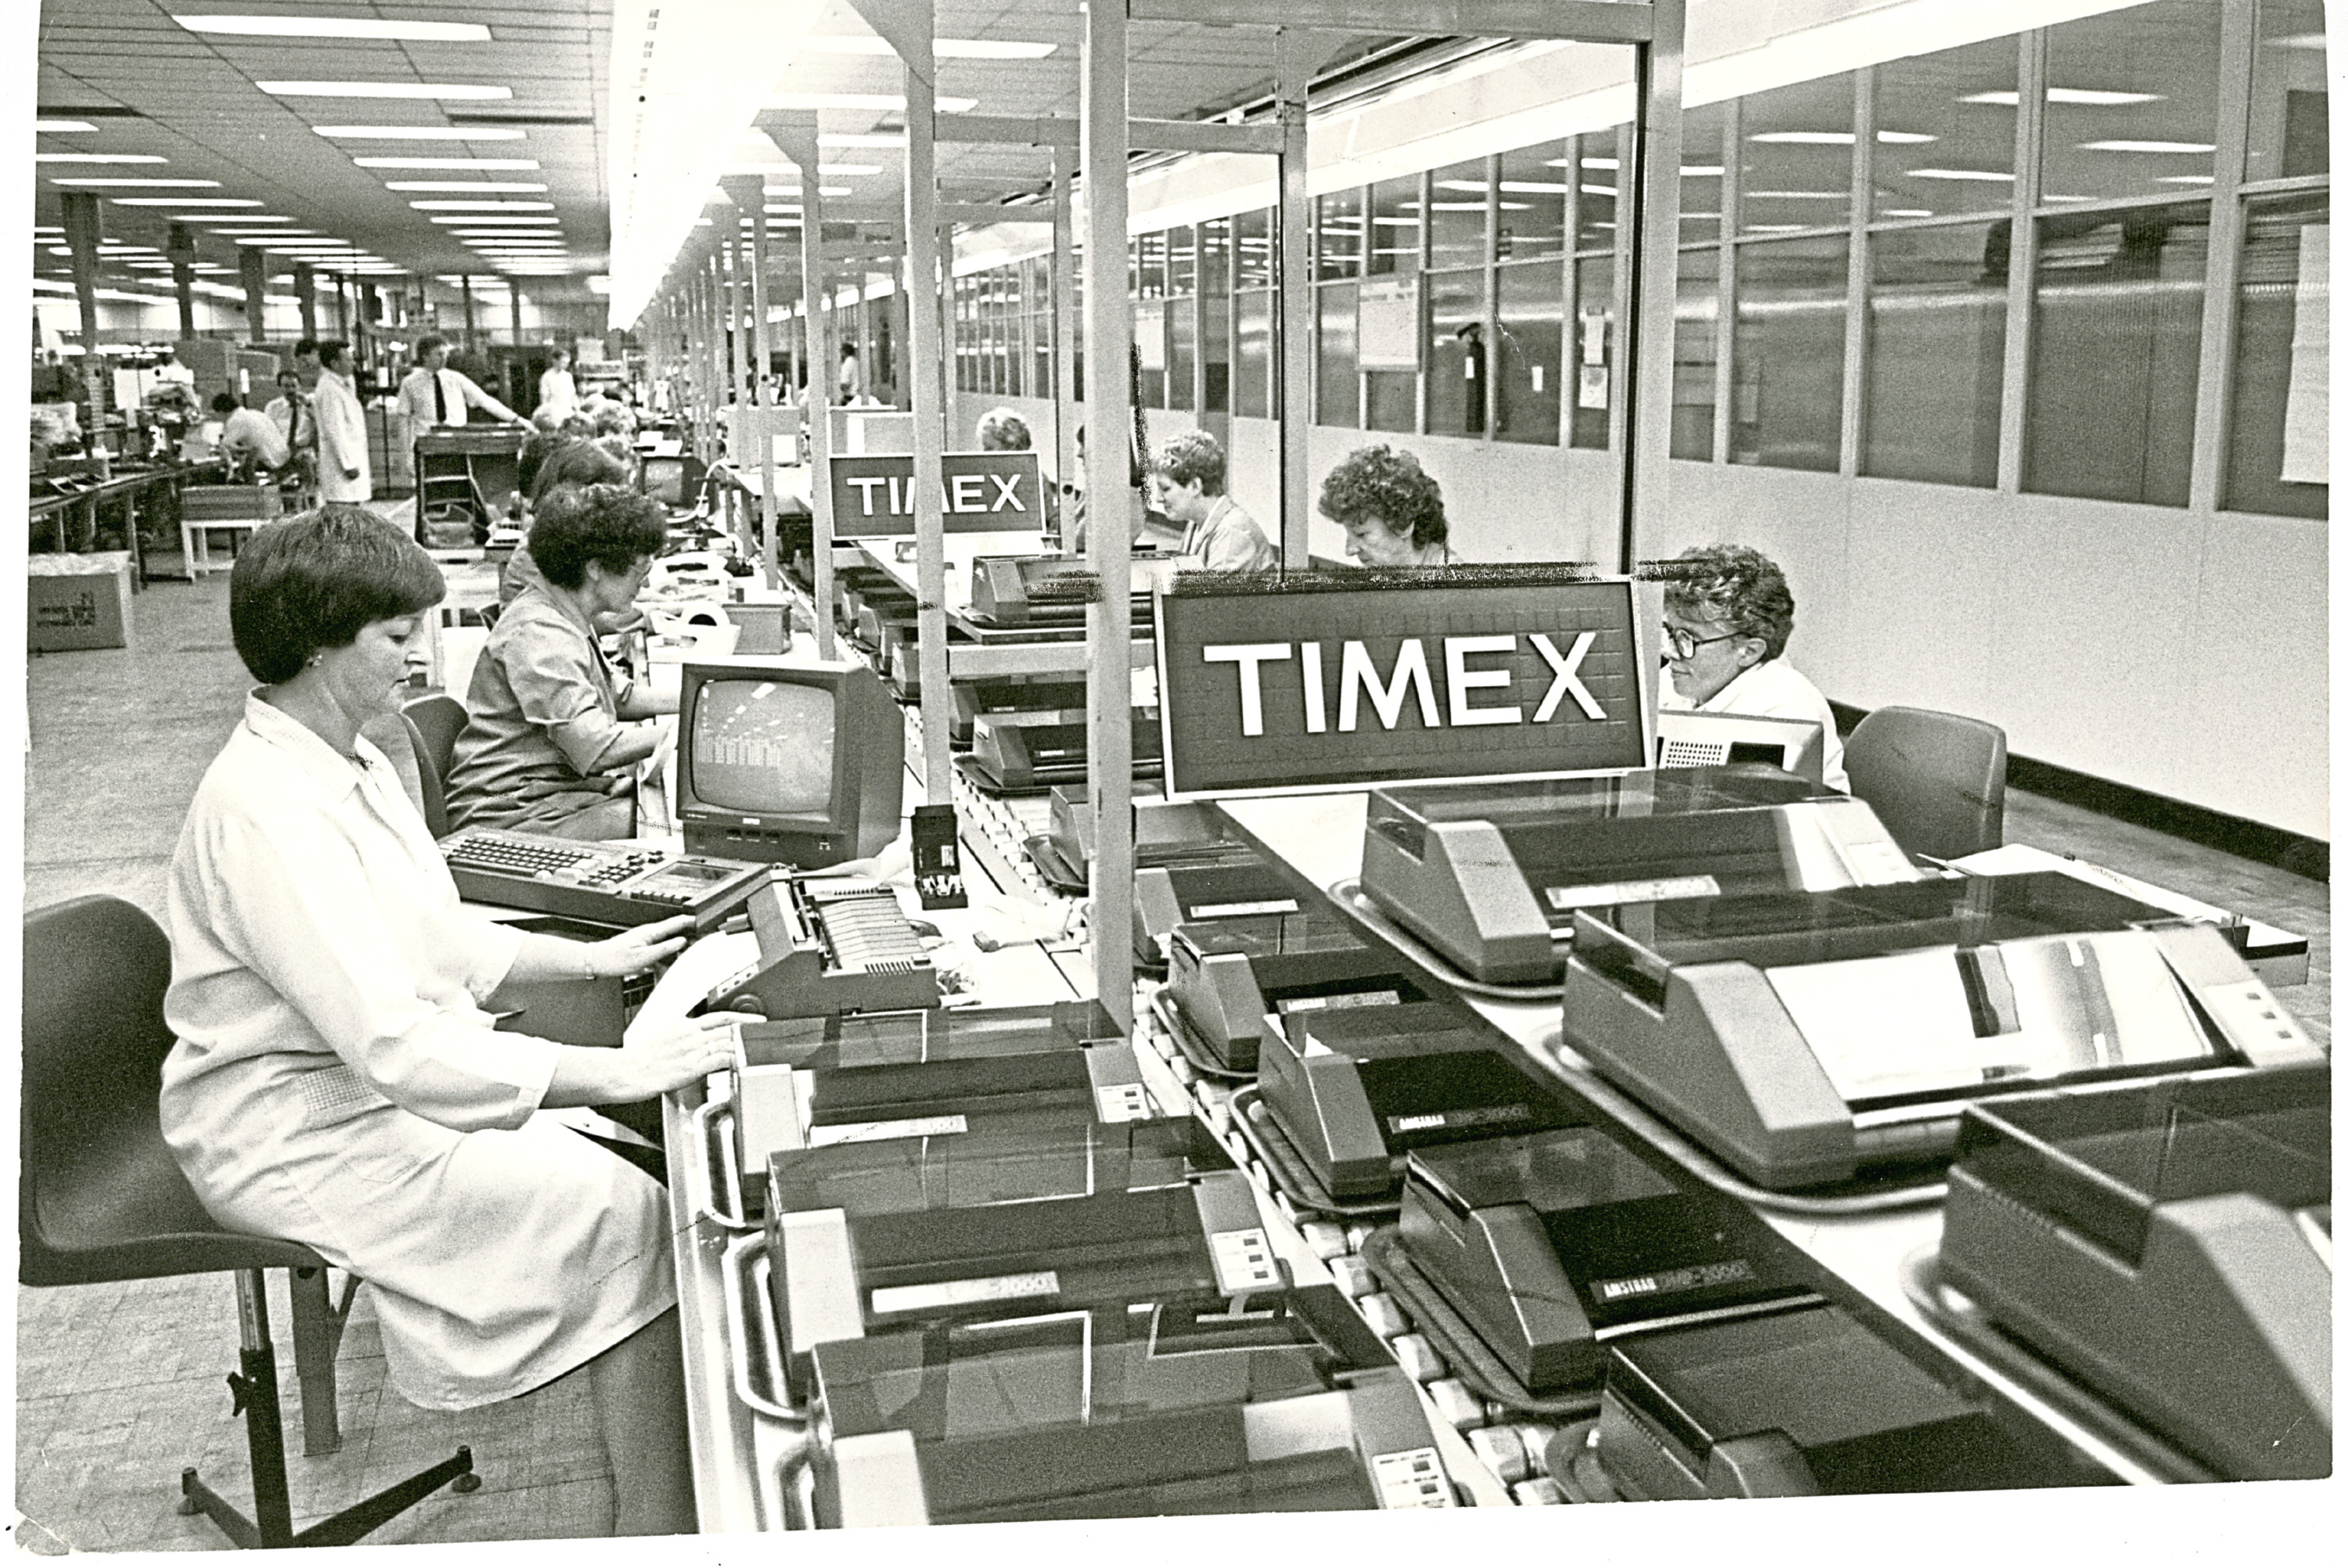 The final assembly line in the Timex factory for an Amstrad Printer.